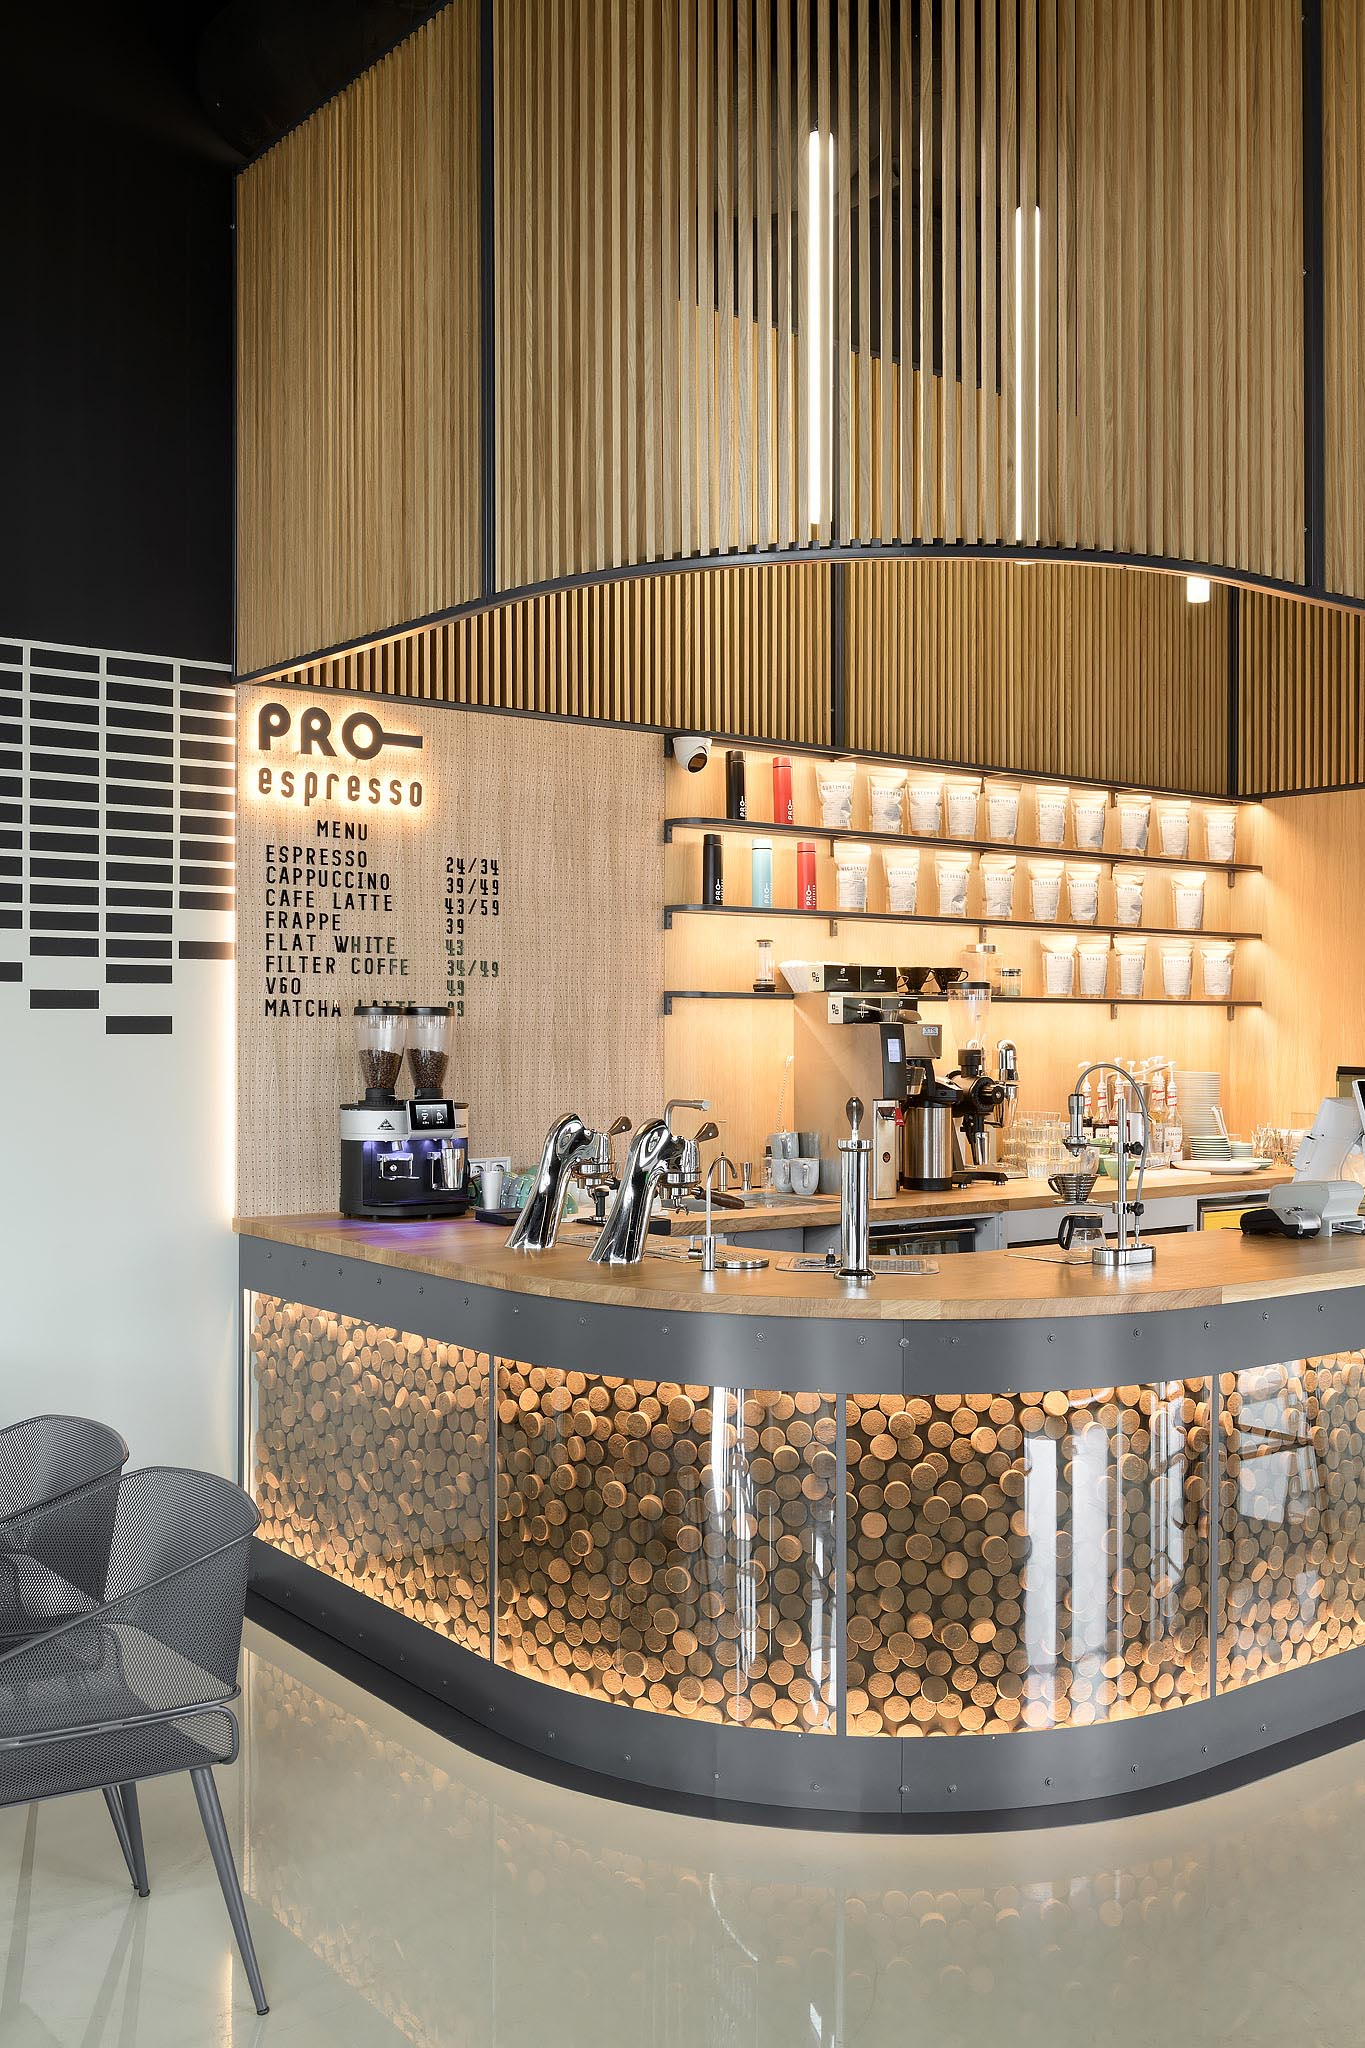 The bar counter of this modern coffee shop resembles the letter U and underneath the bar is a glass enclosed decorative accent that encloses 1300 tablets of coffee pomace.